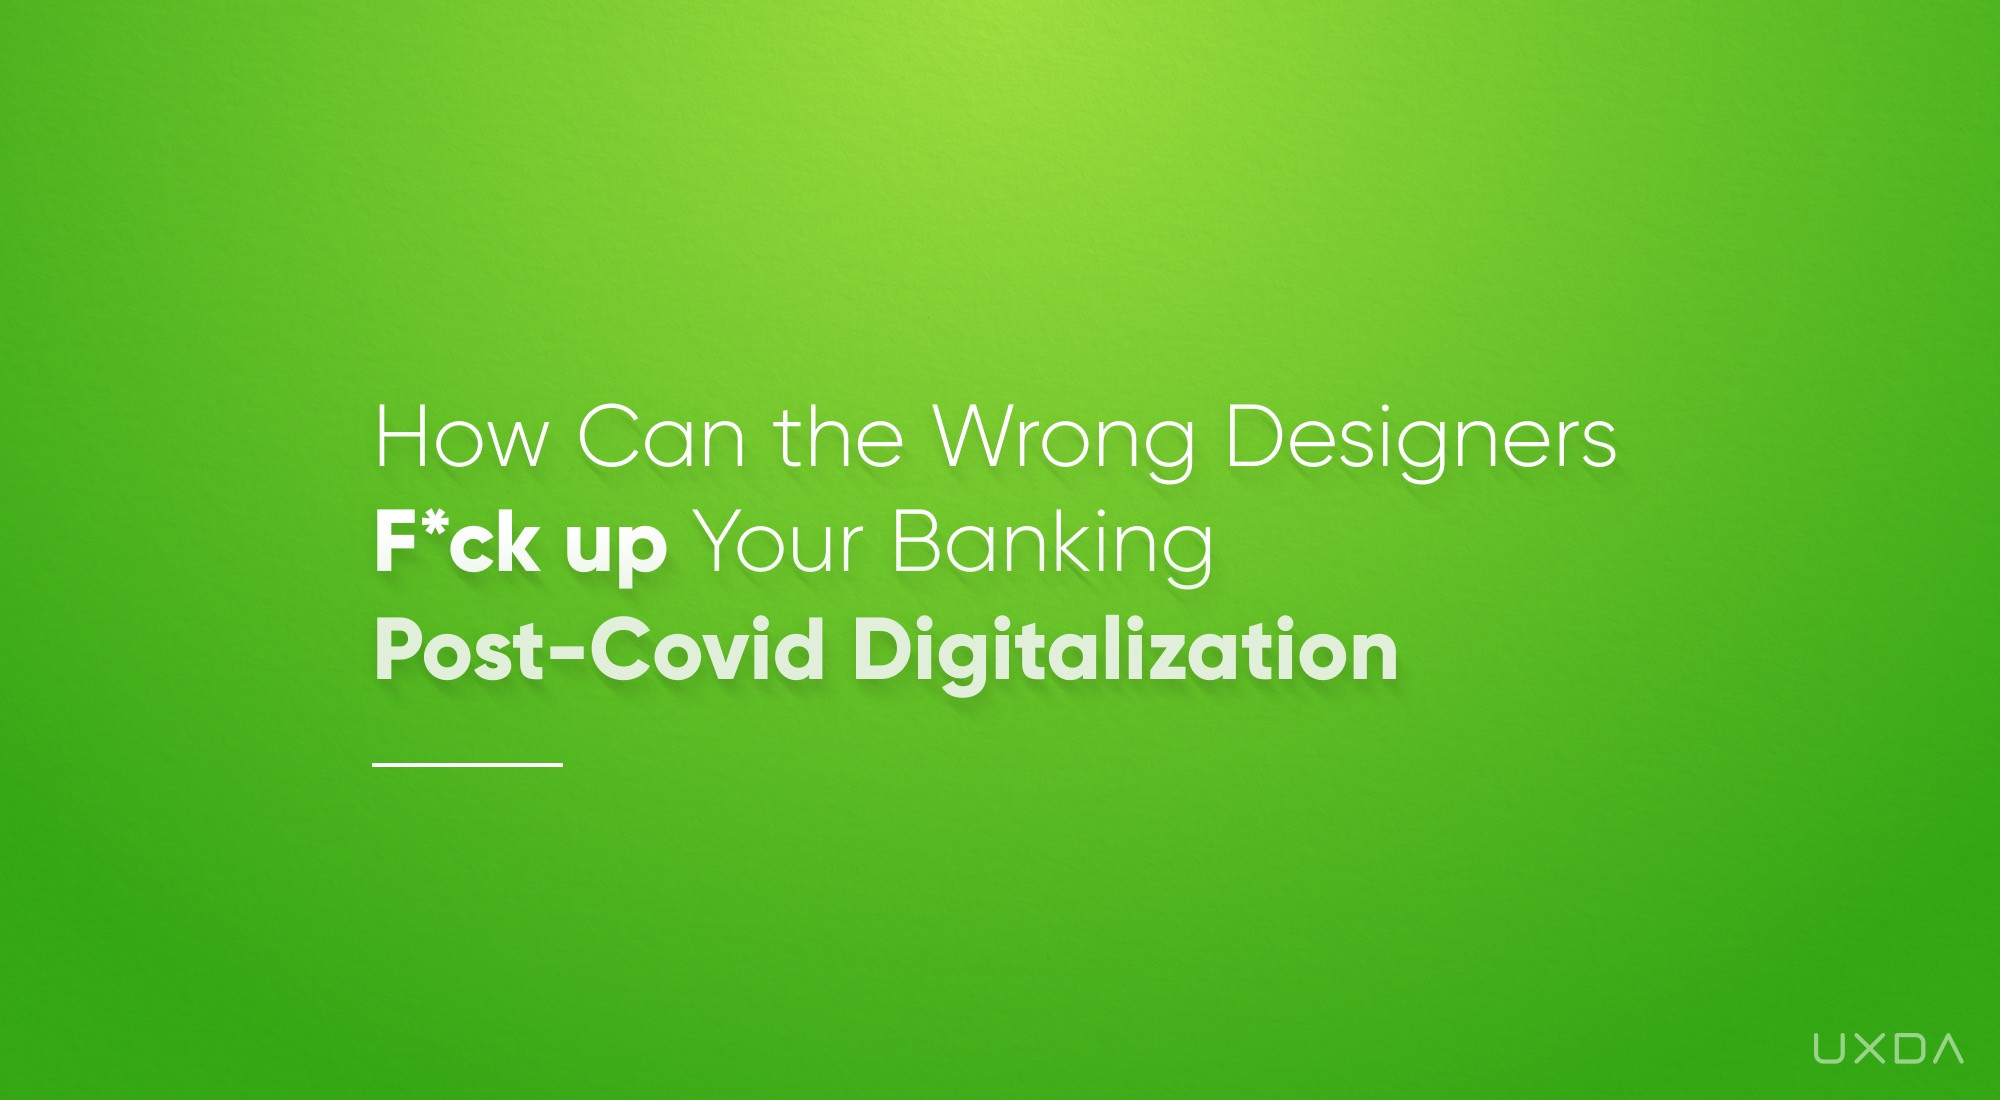 How Can the Wrong Designers F*ck up Your Banking Post-Covid Digitalization?